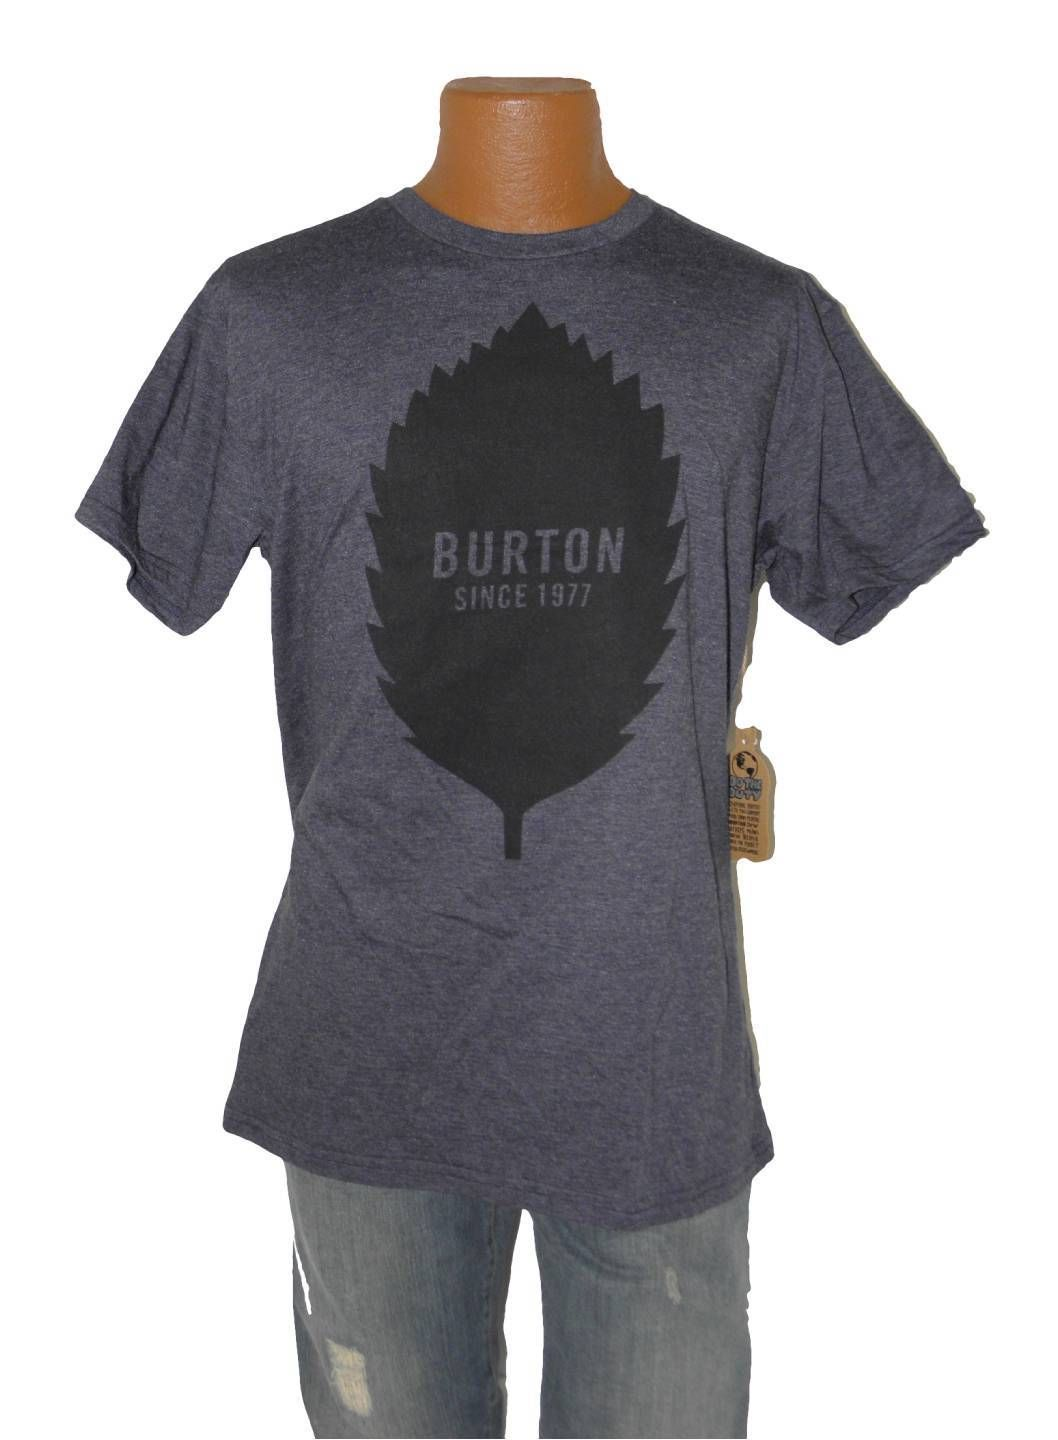 MENS BURTON SNOWBOARD SLIM FIT MOUNTAIN MTN DEW TEE LOGO T SHIRT L LARGE LEAF